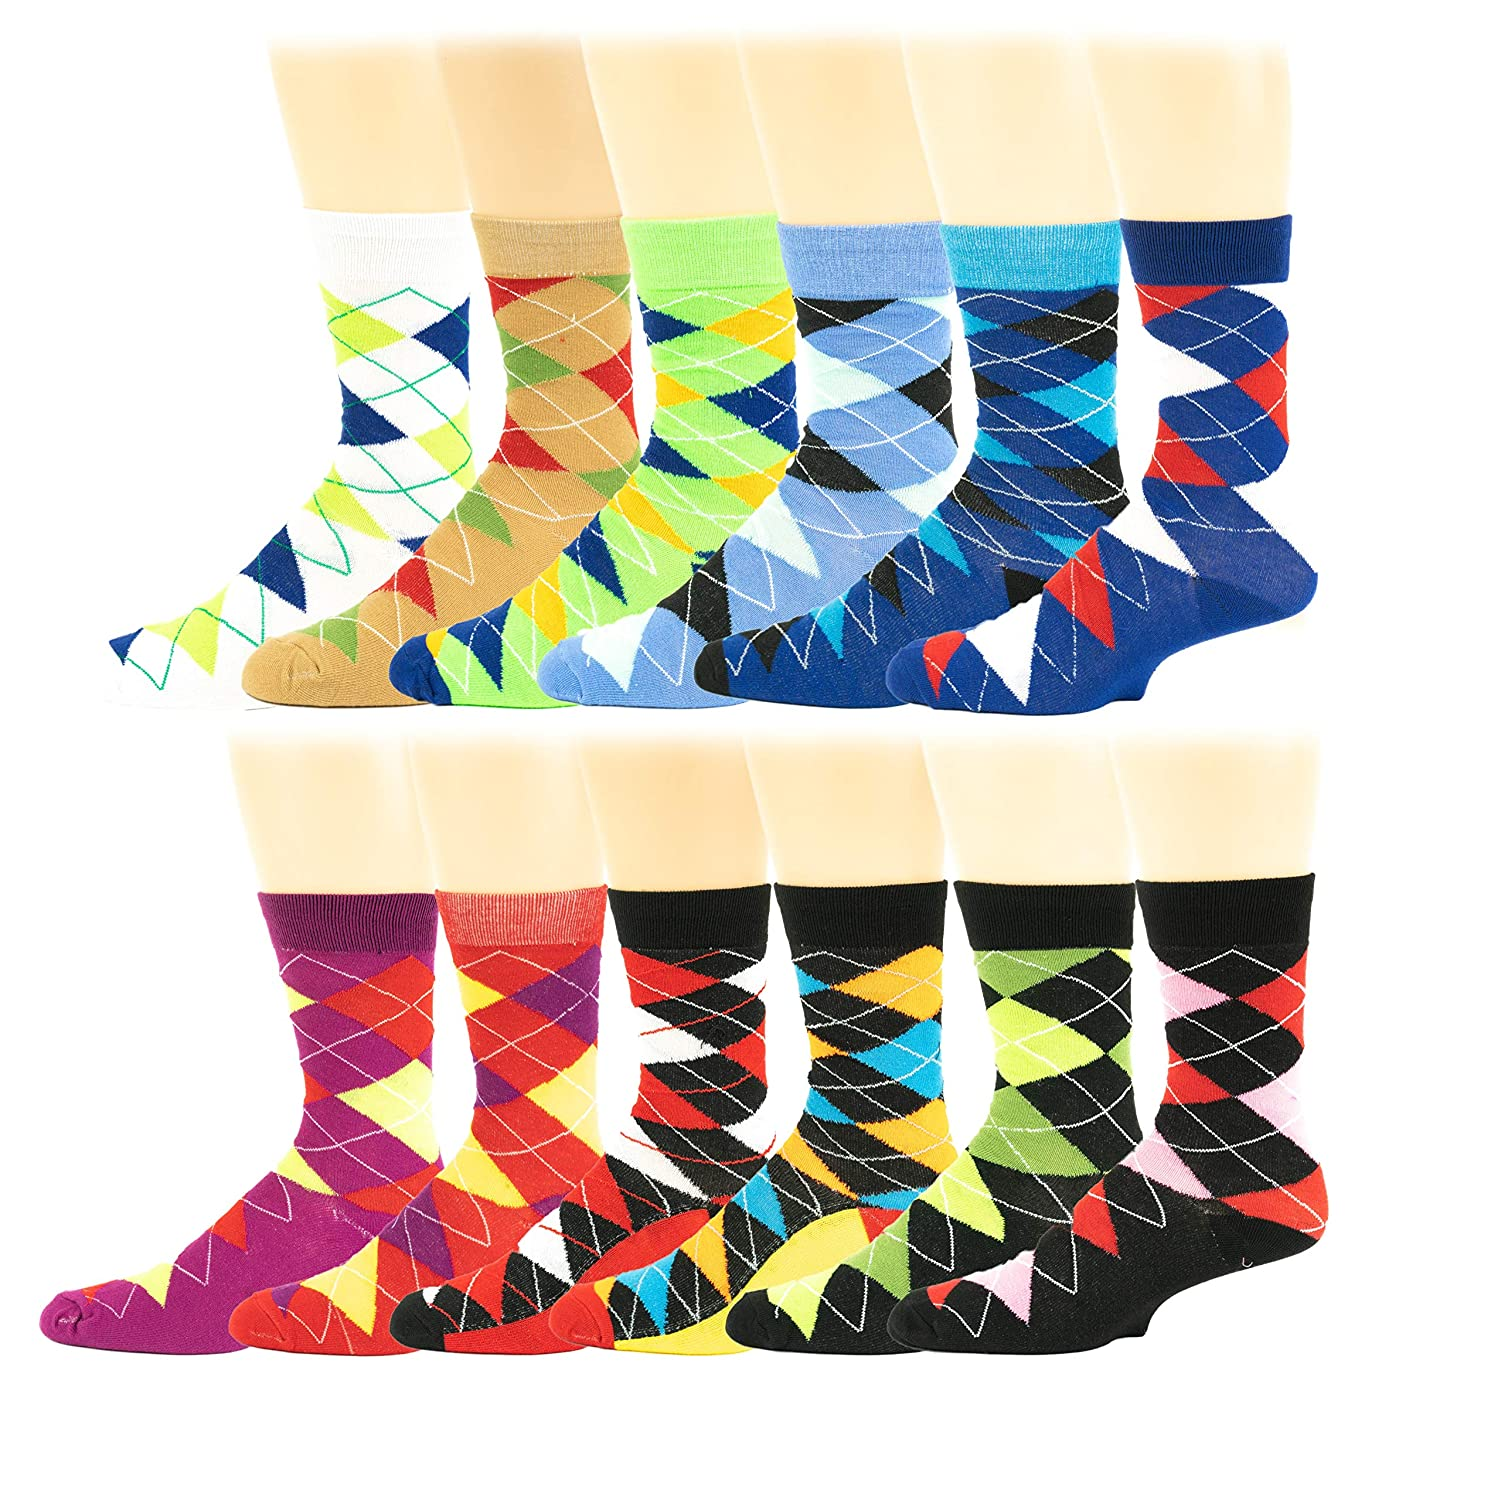 12 Pairs/6 Pairs Colorful Fashion Design Dress socks 10-13